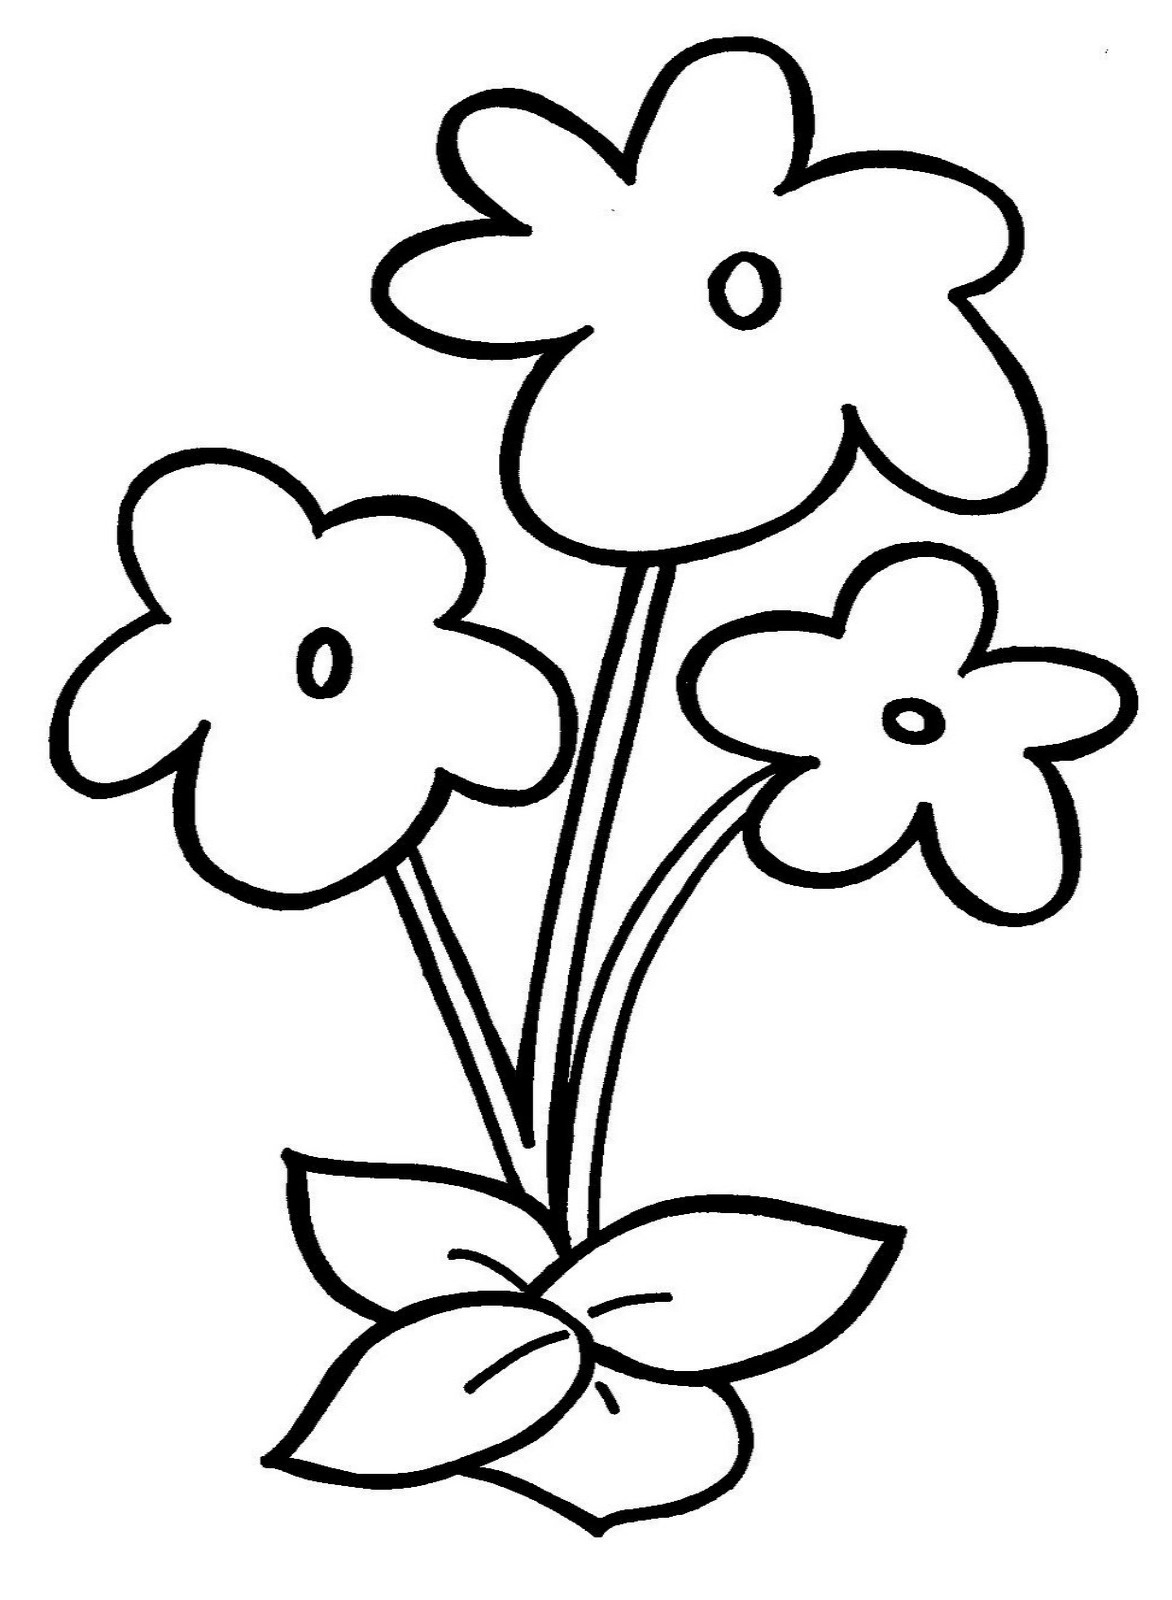 coloring flower free easy to print flower coloring pages tulamama flower coloring